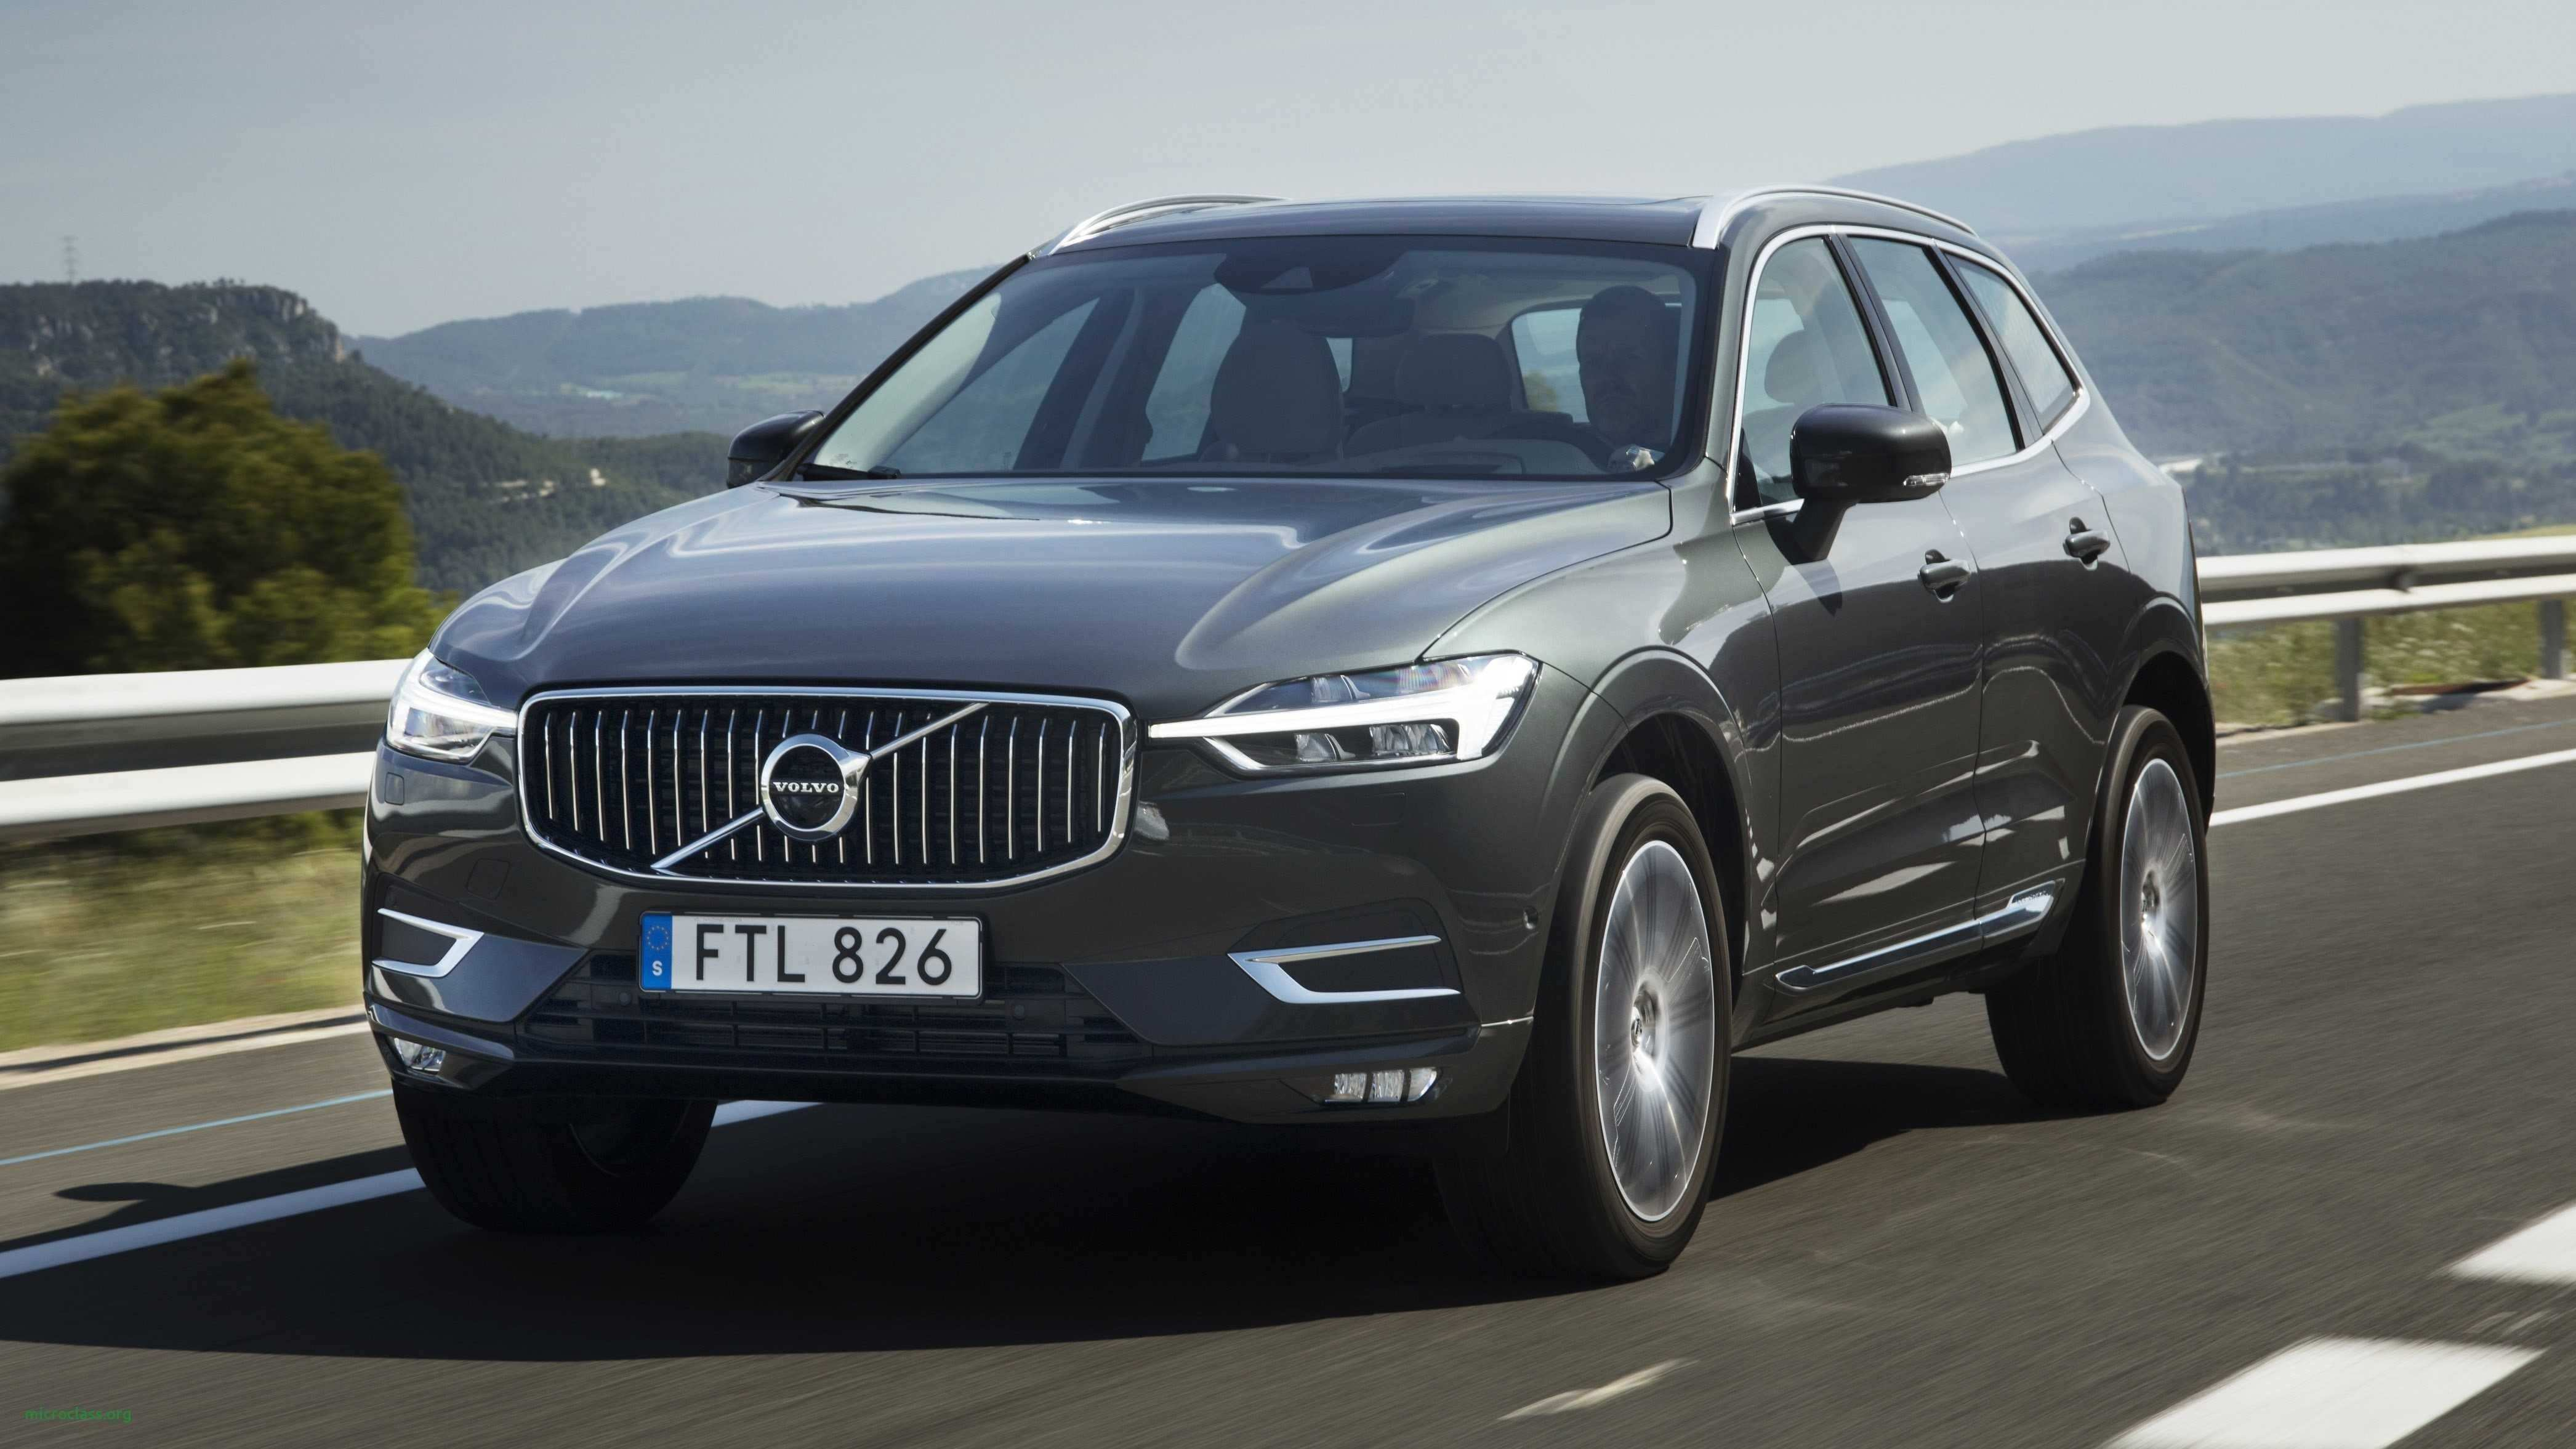 49 The Volvo Xc90 Facelift 2019 Specs and Review with Volvo Xc90 Facelift 2019